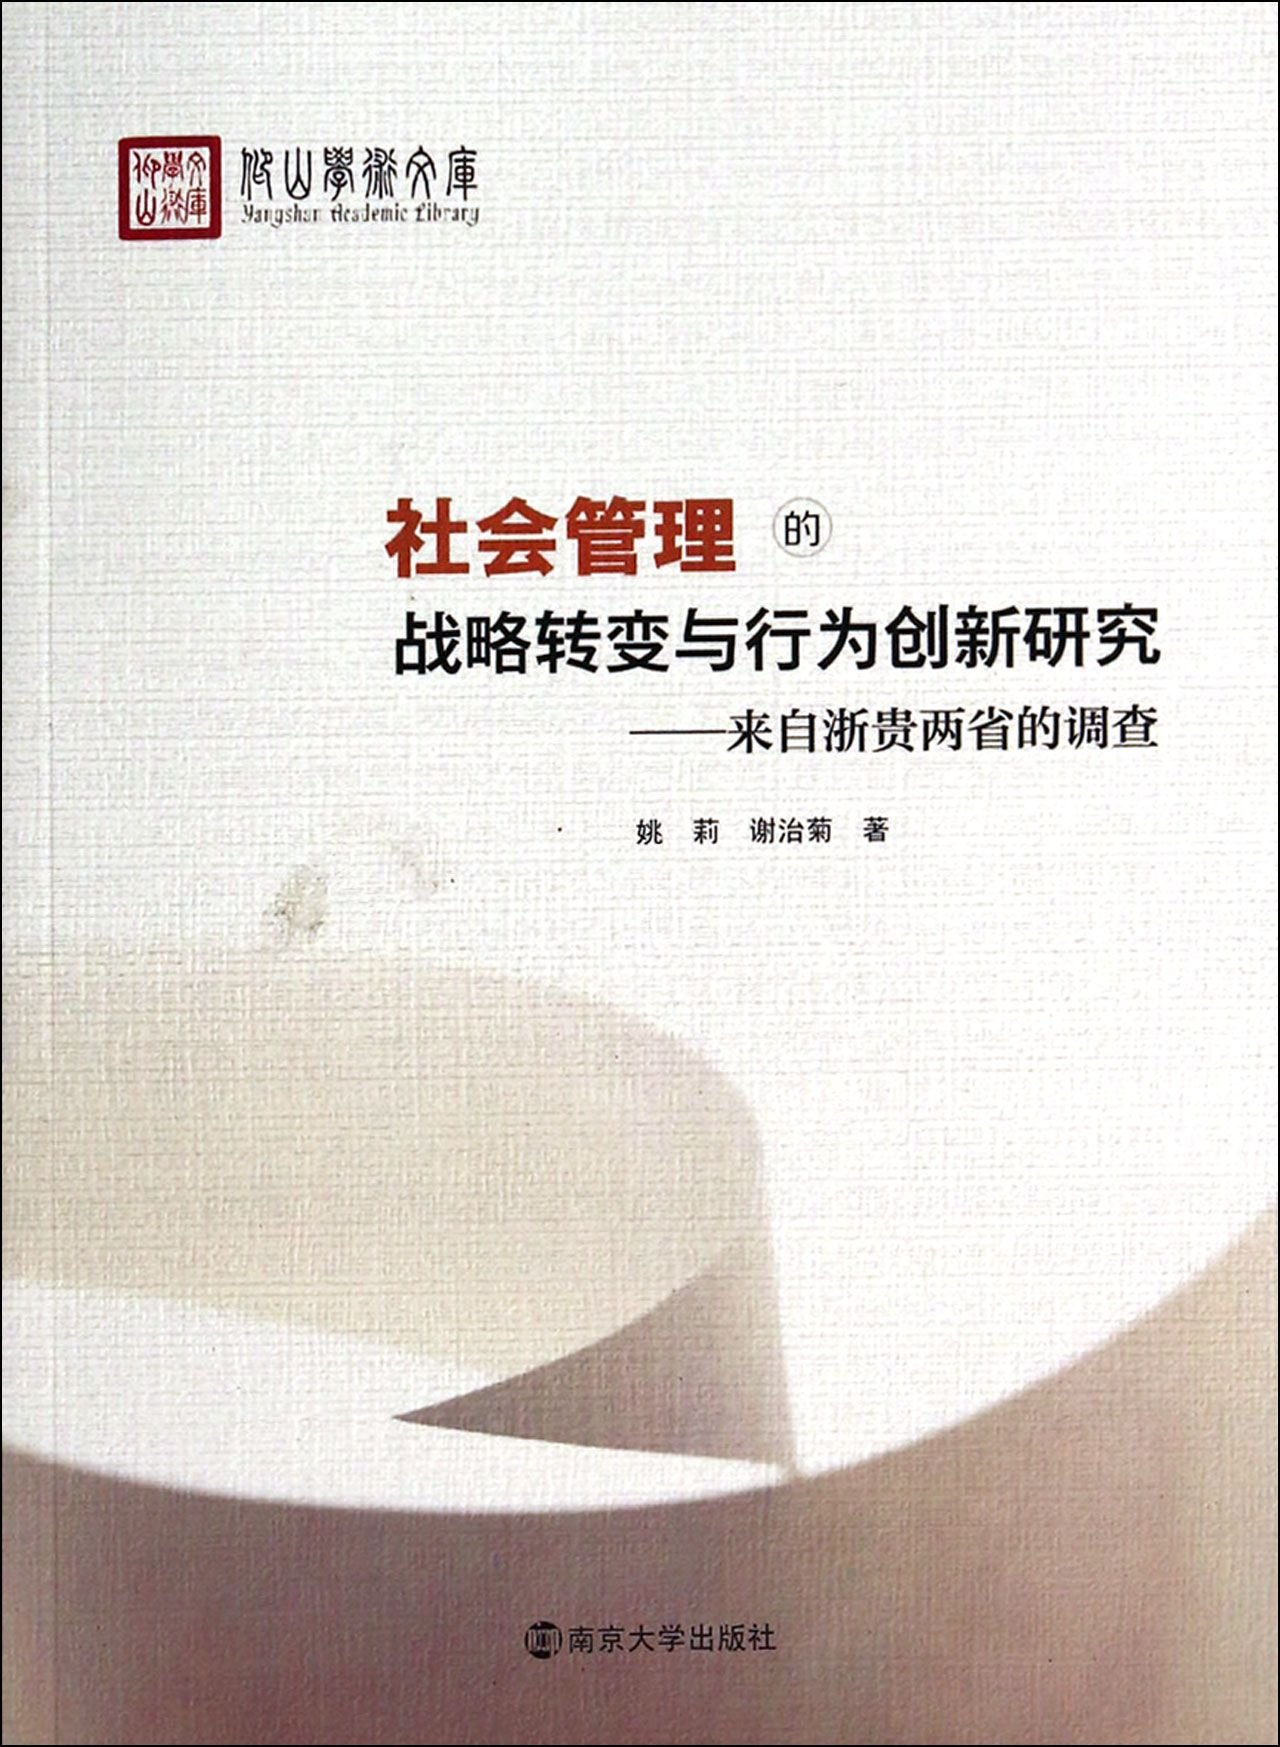 Behavior change and social management innovation and research strategy: survey from the provinces of Zhejiang and expensive(Chinese Edition) PDF